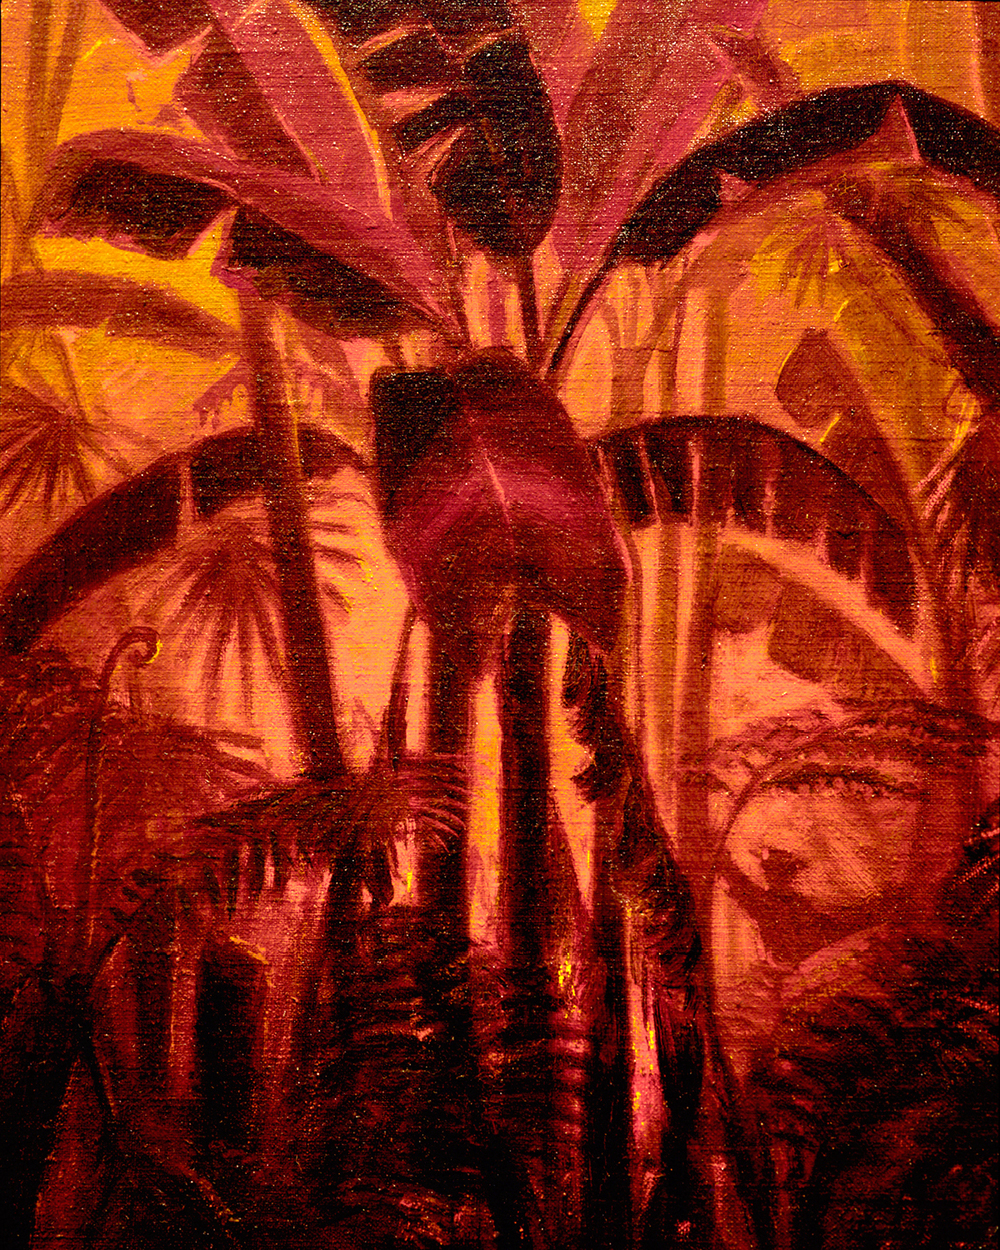 FIERY PALMS SEEN AT THE HONOLULU MUSEUM OF ART